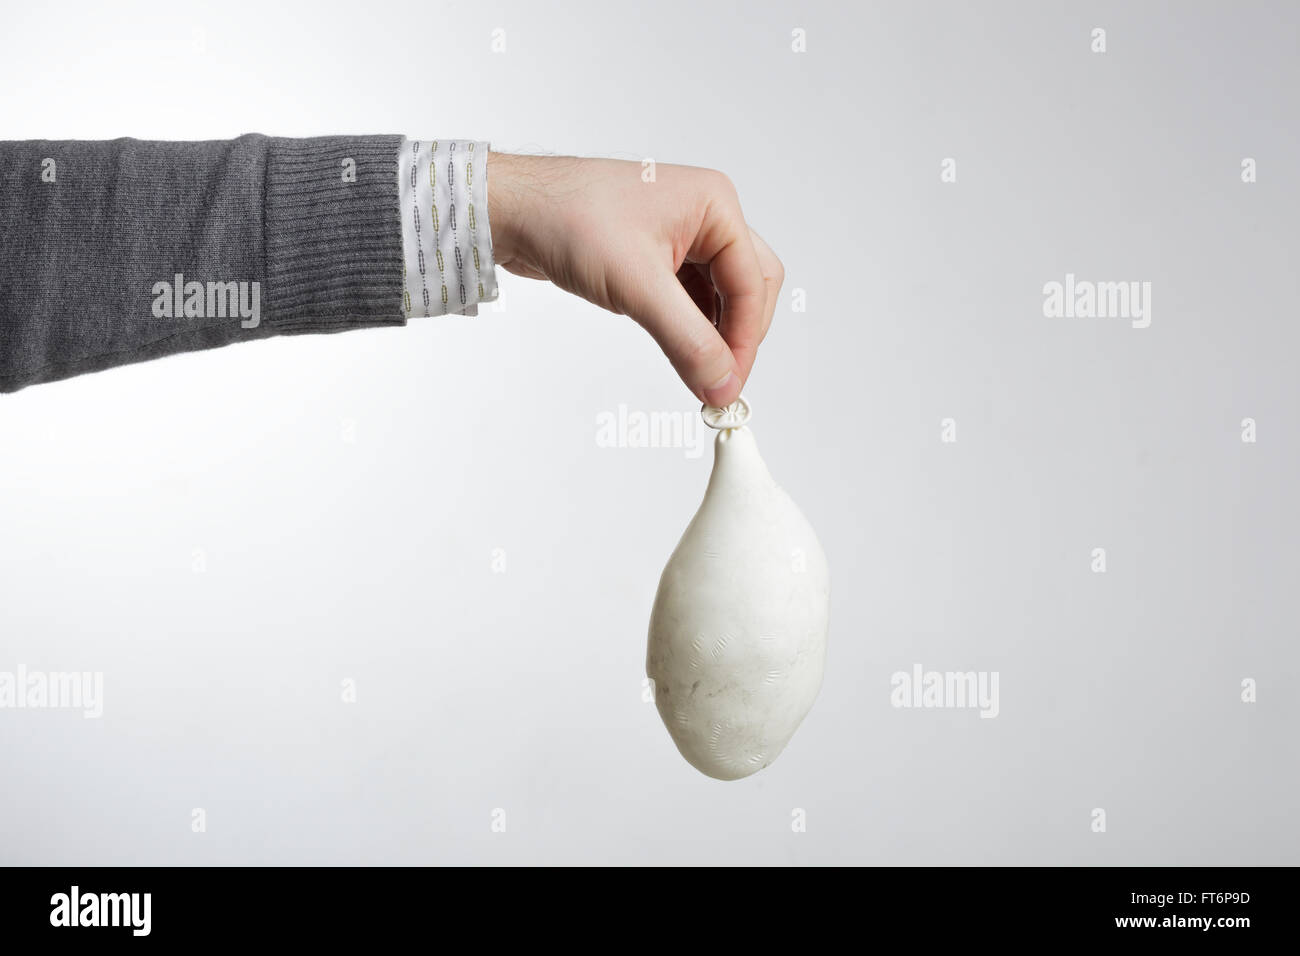 Man holding white balloon in hand - Stock Image